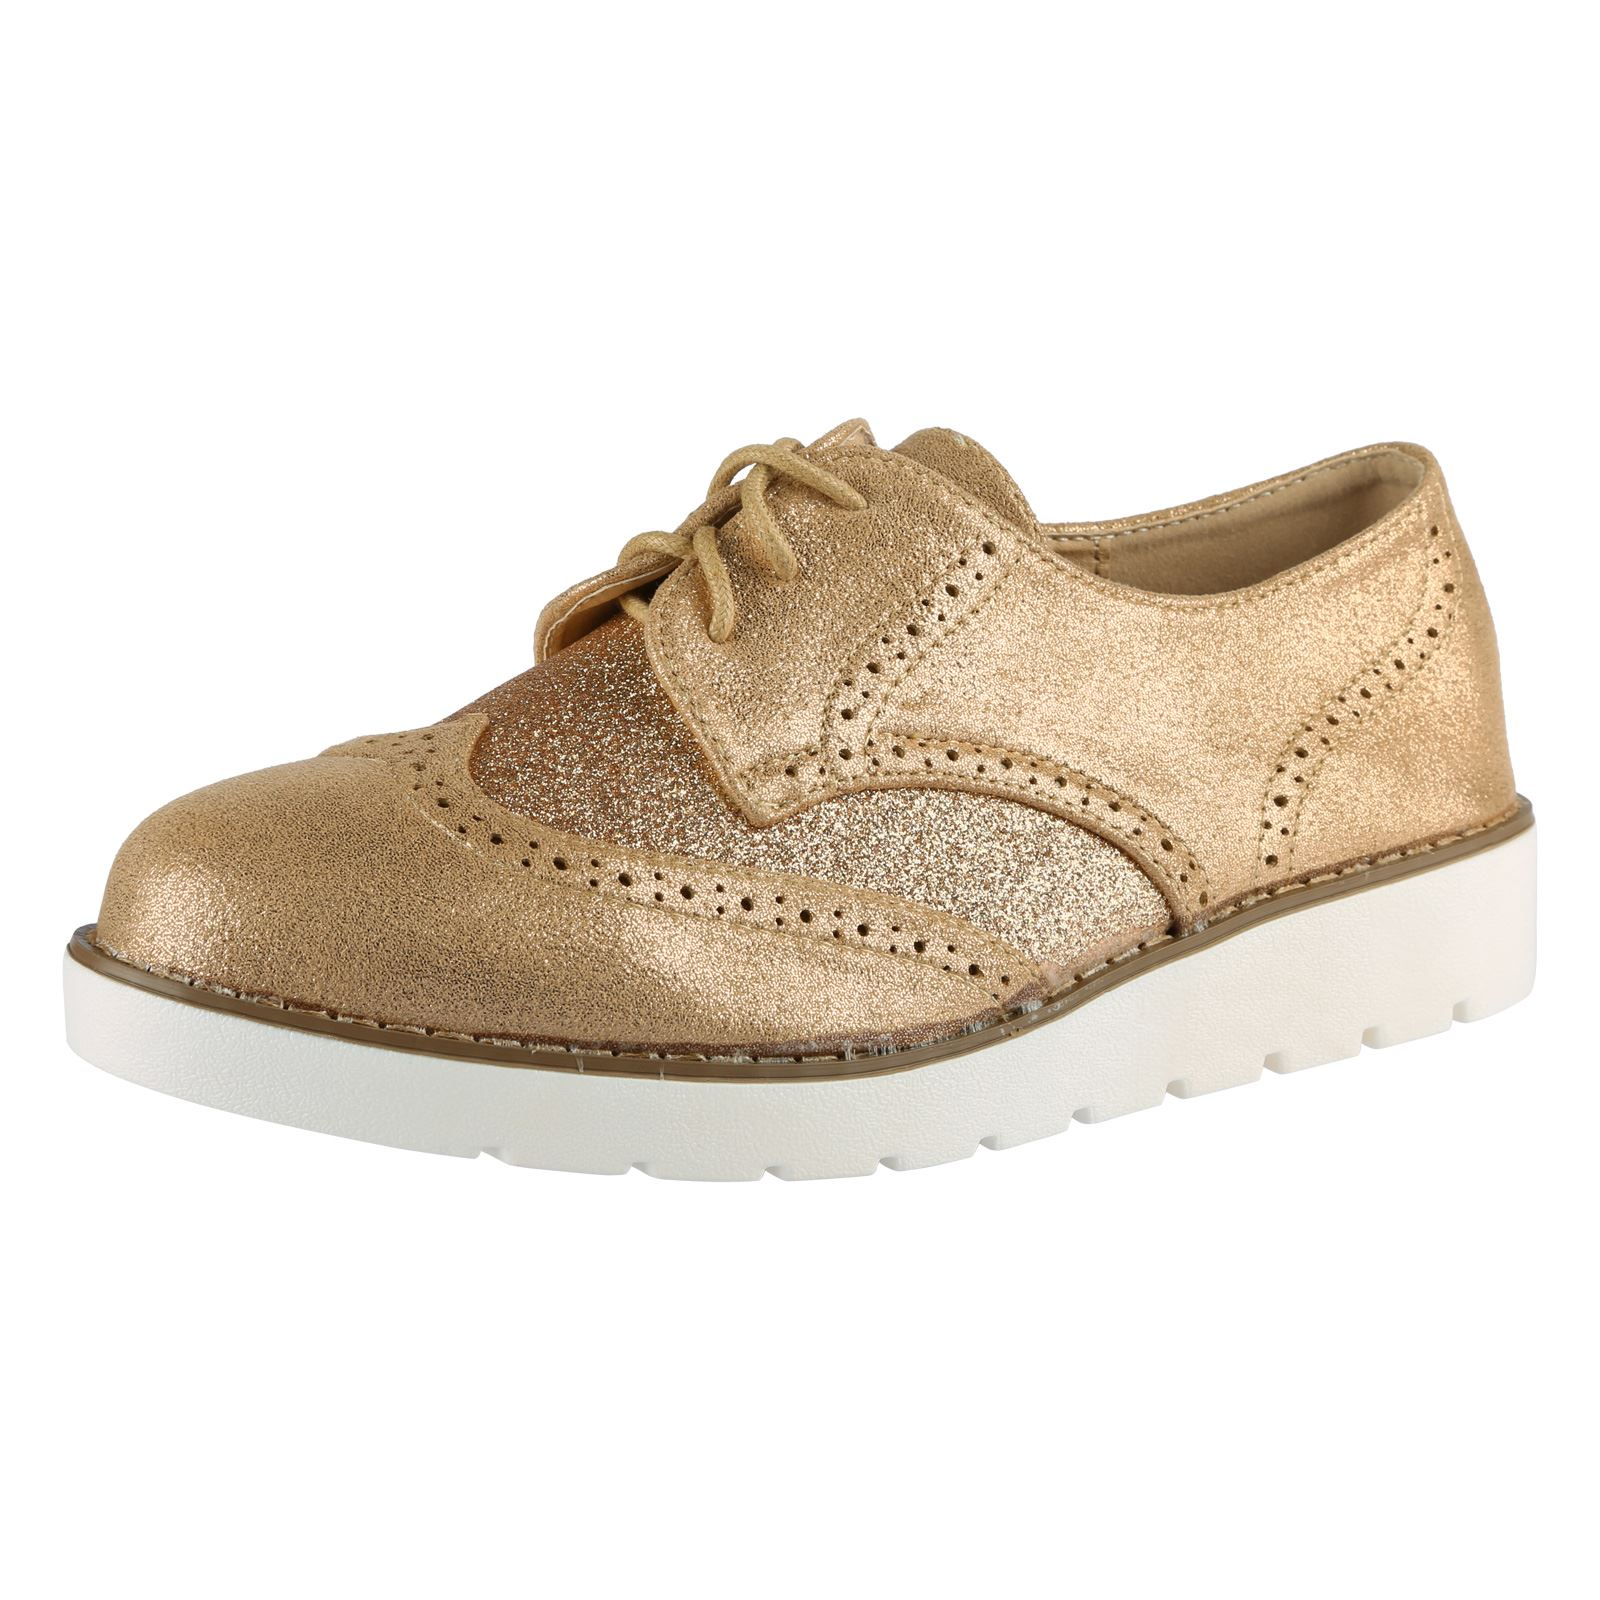 Ladies Two Tone Brogues Shoes